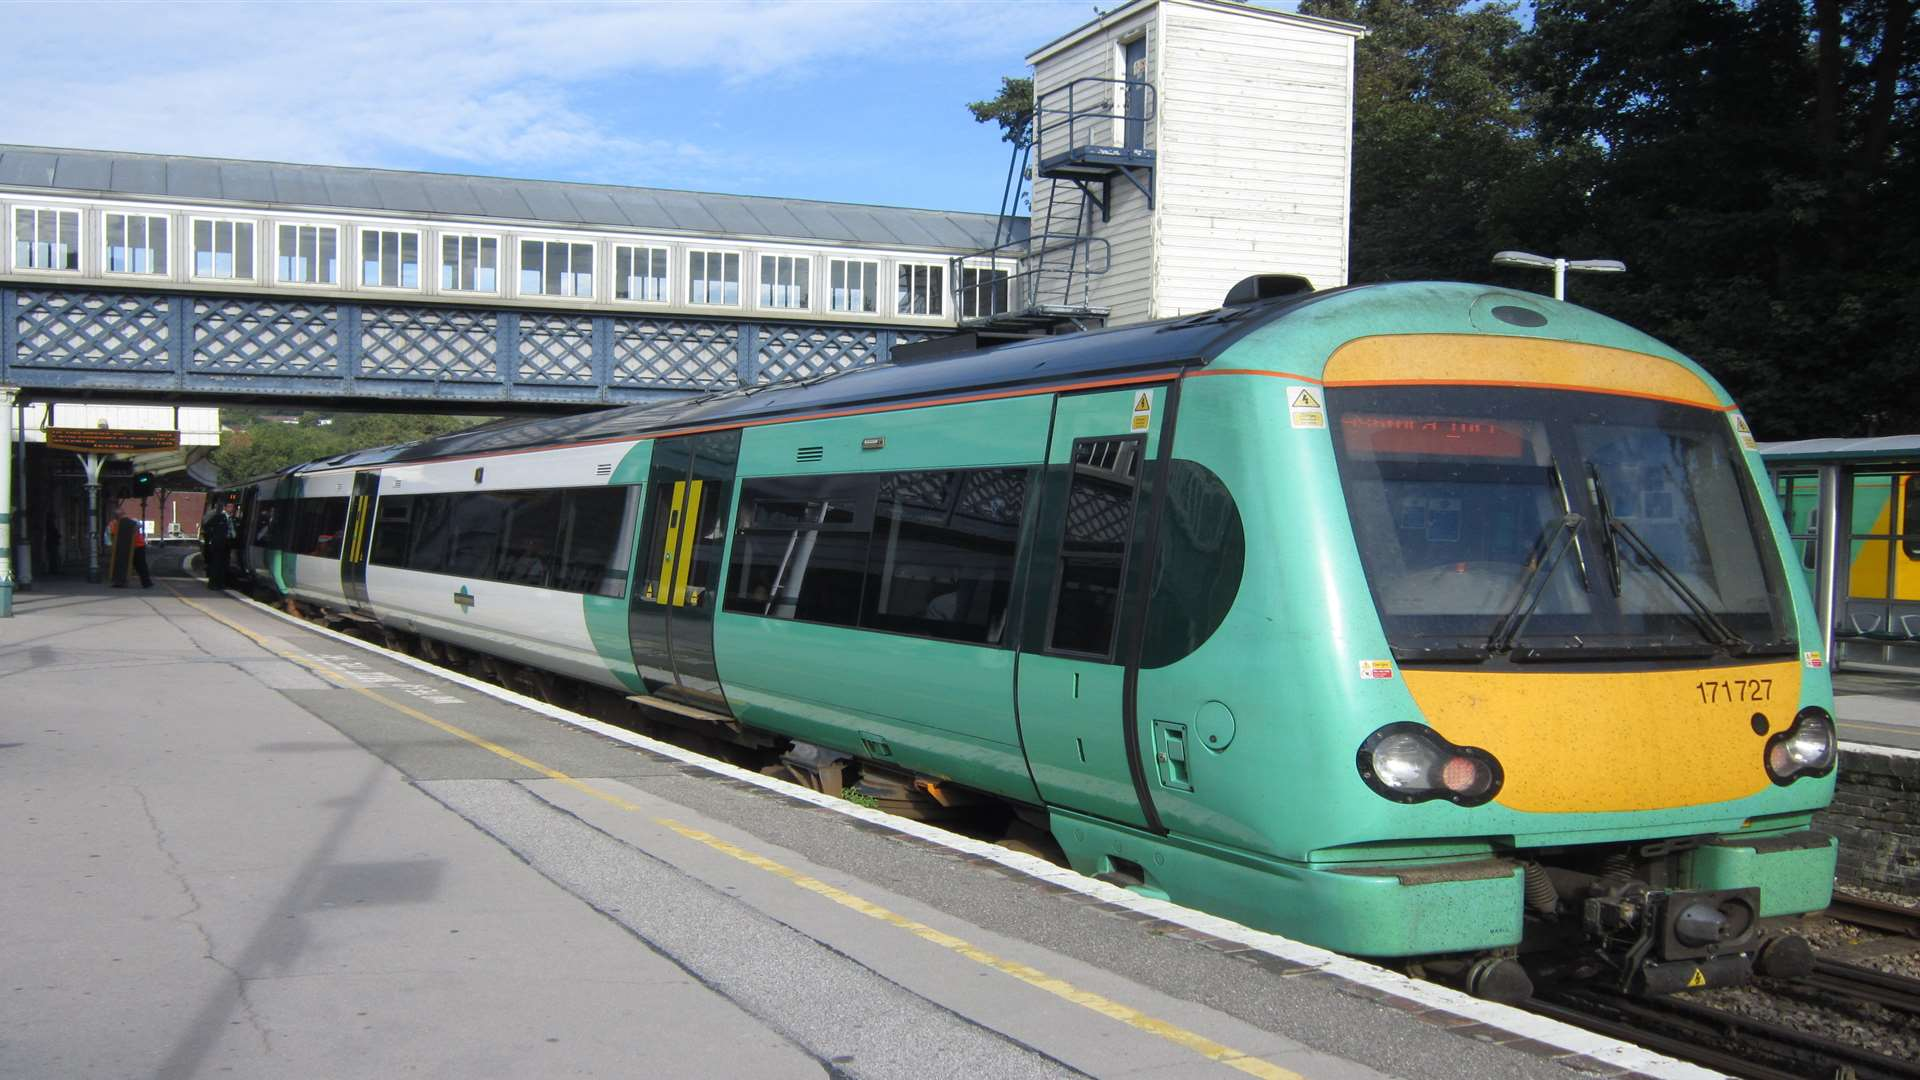 A Southern Rail train. Stock picture.